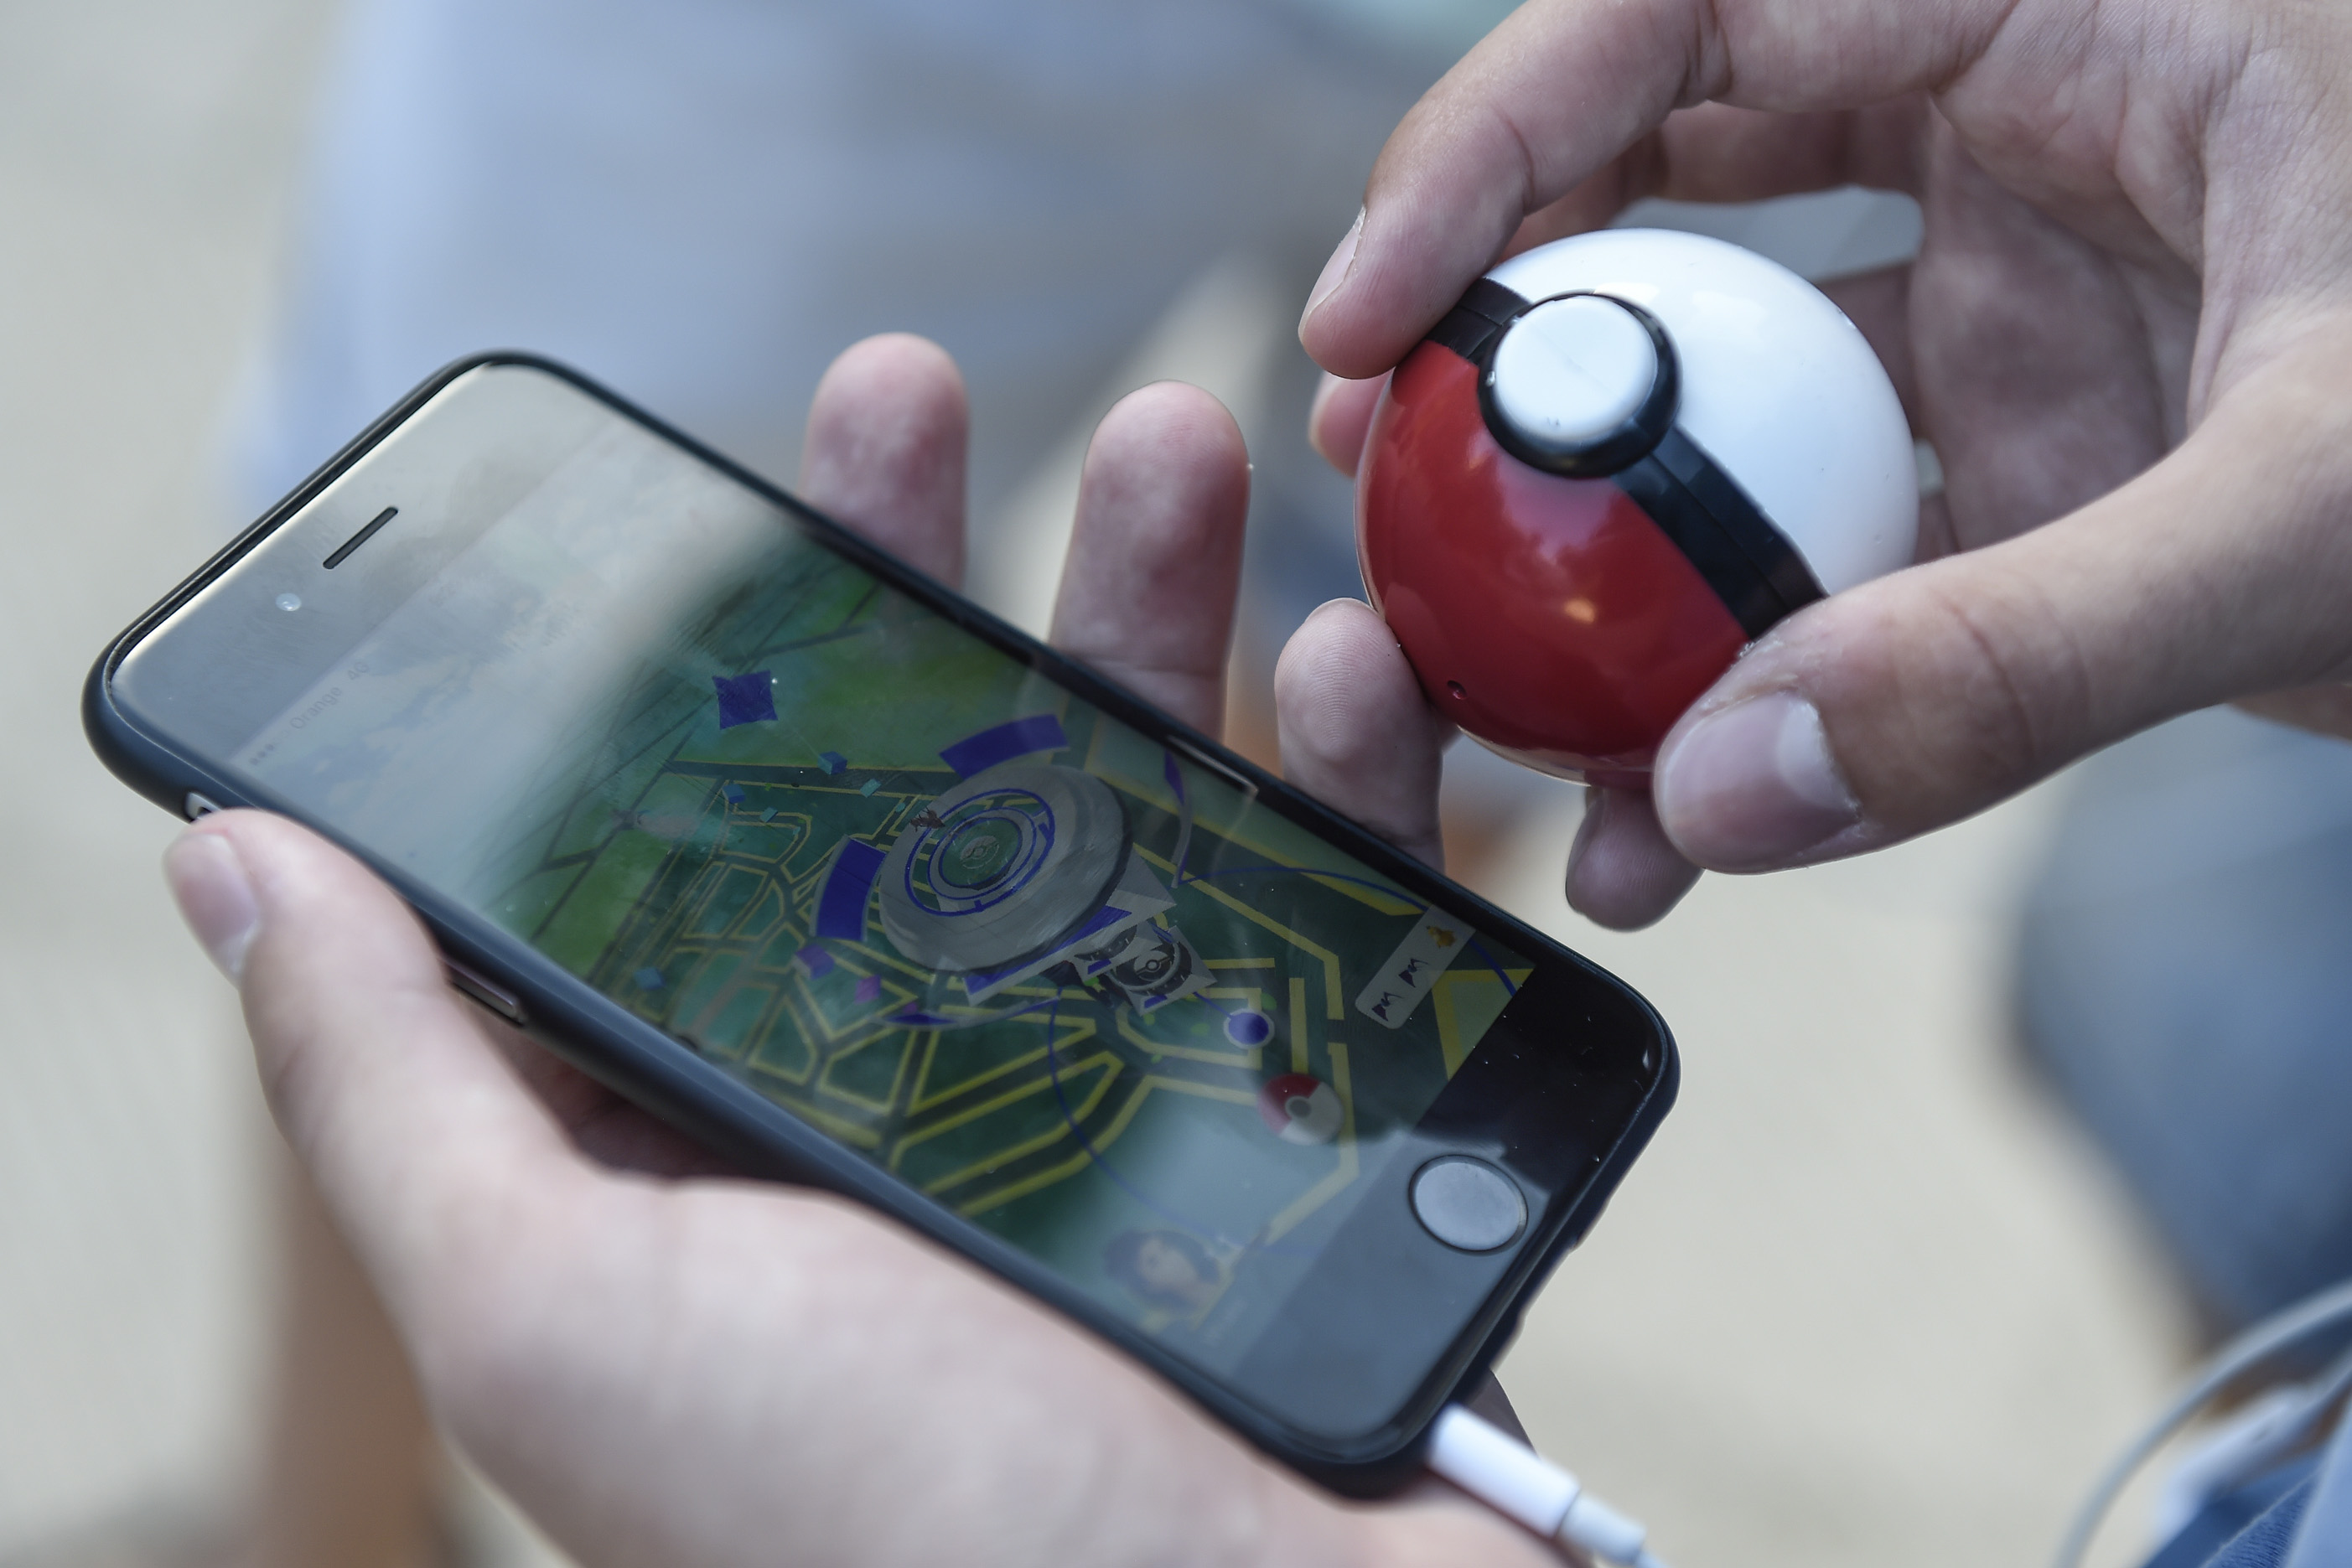 A gamer uses the Pokemon Go application on his mobile phone at a park in Barcelona, Spain, on July 14, 2016. (AFP)